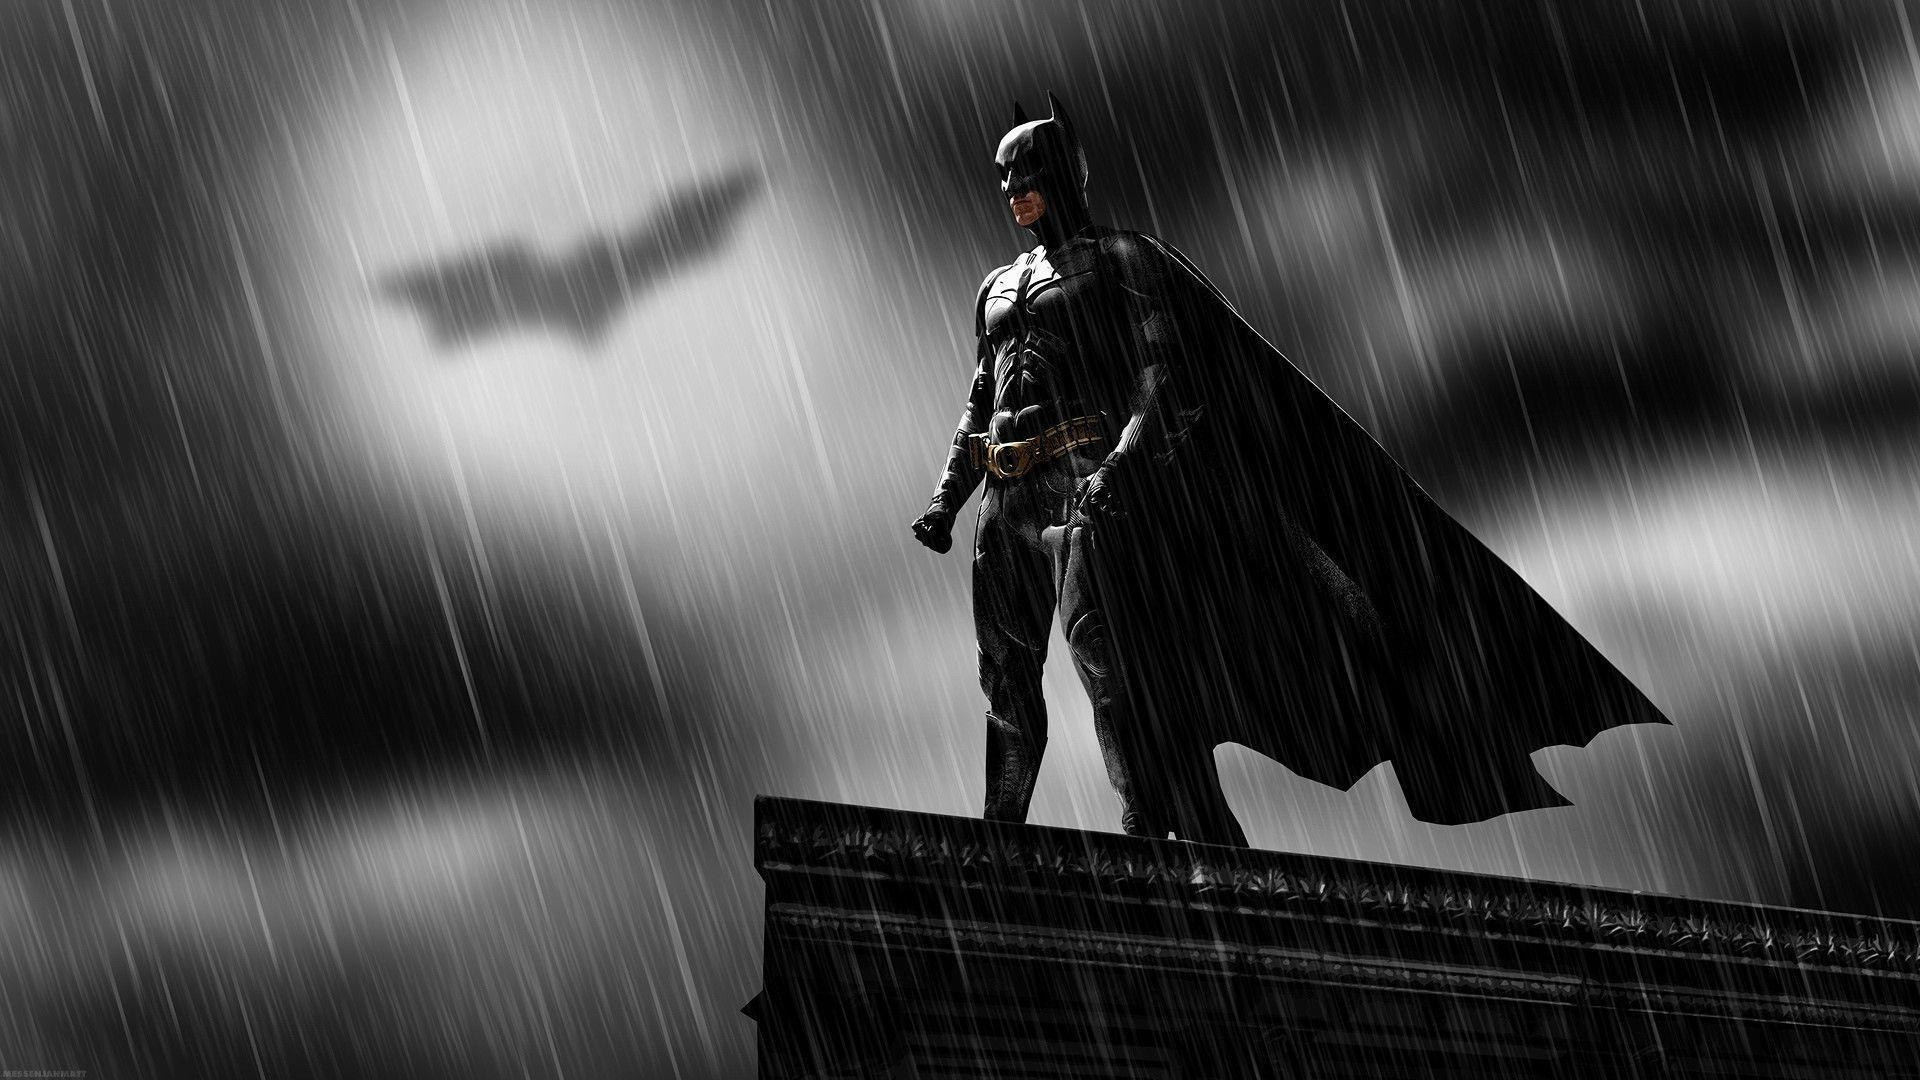 Batman Wallpapers Hd 208910